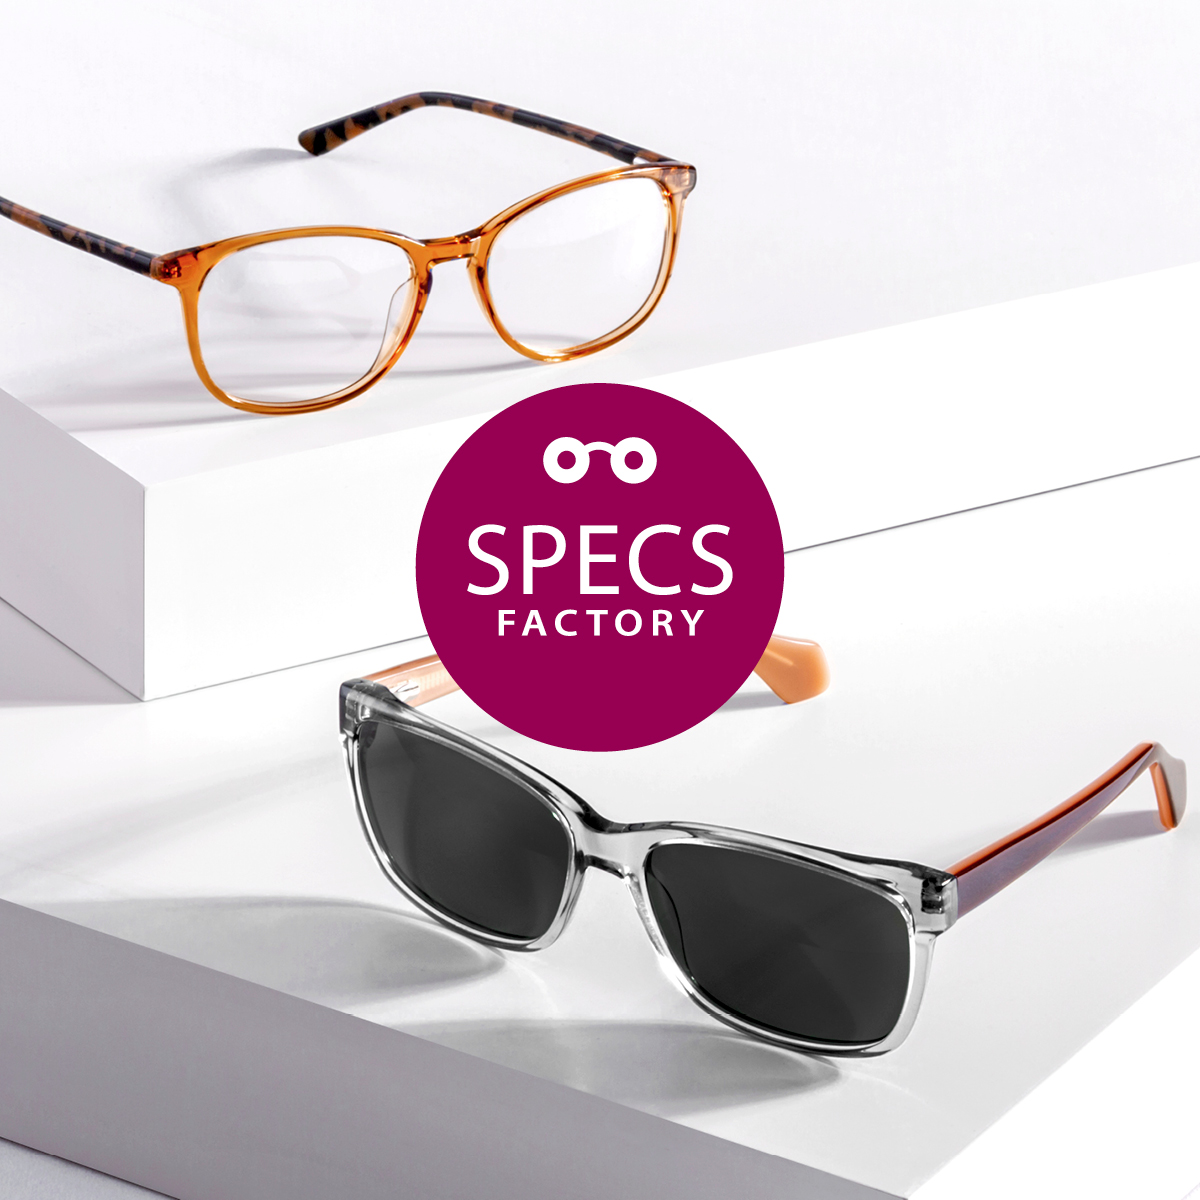 The Specs Factory